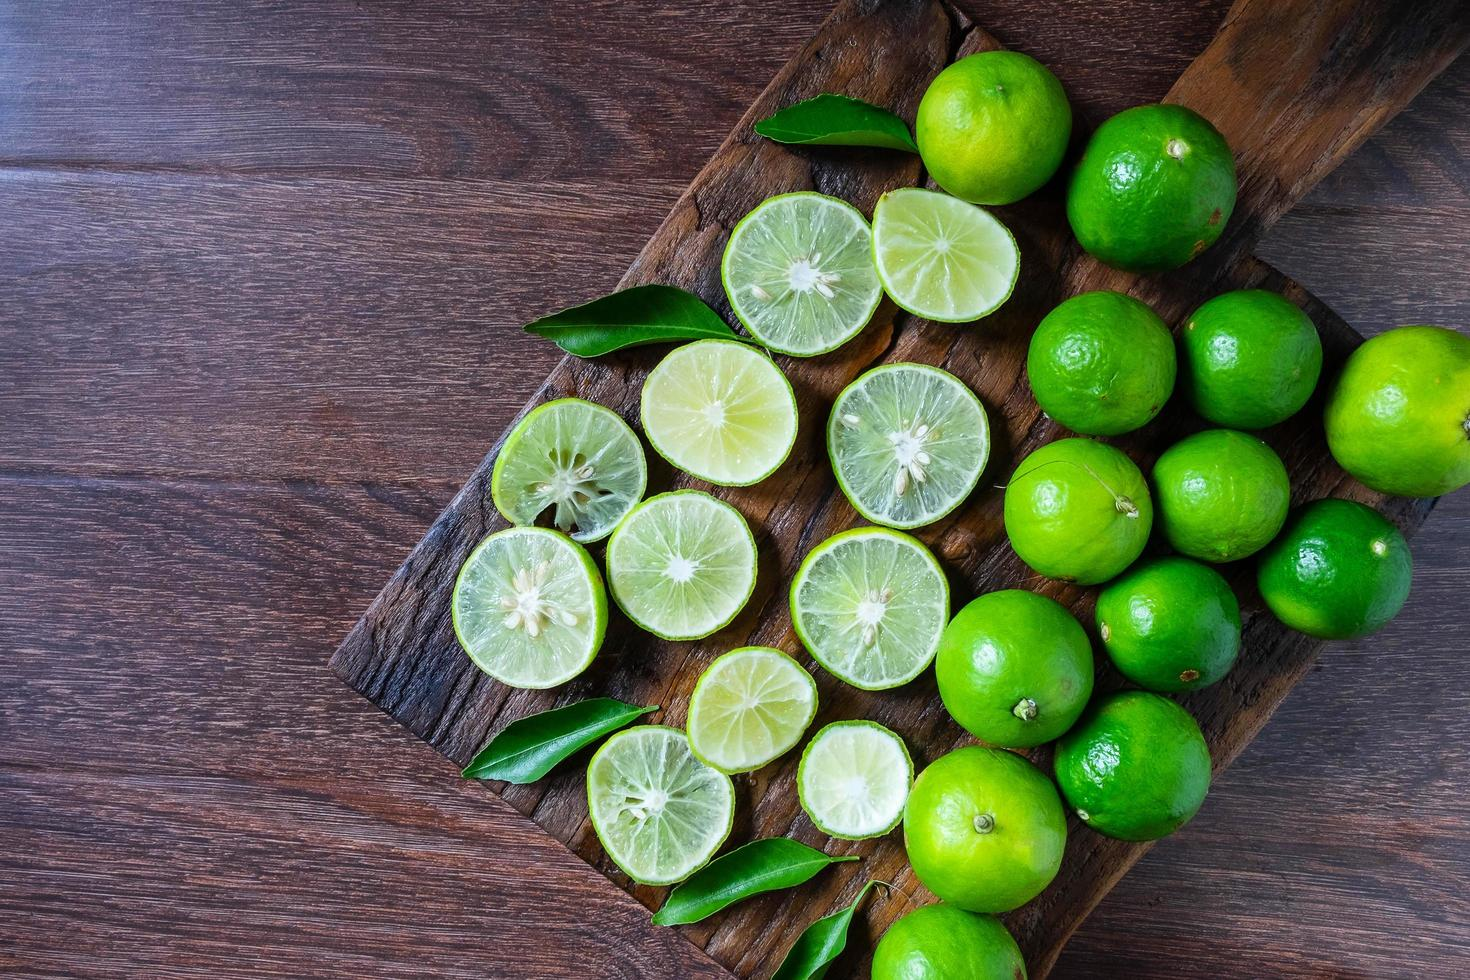 Limes on the cutting board photo